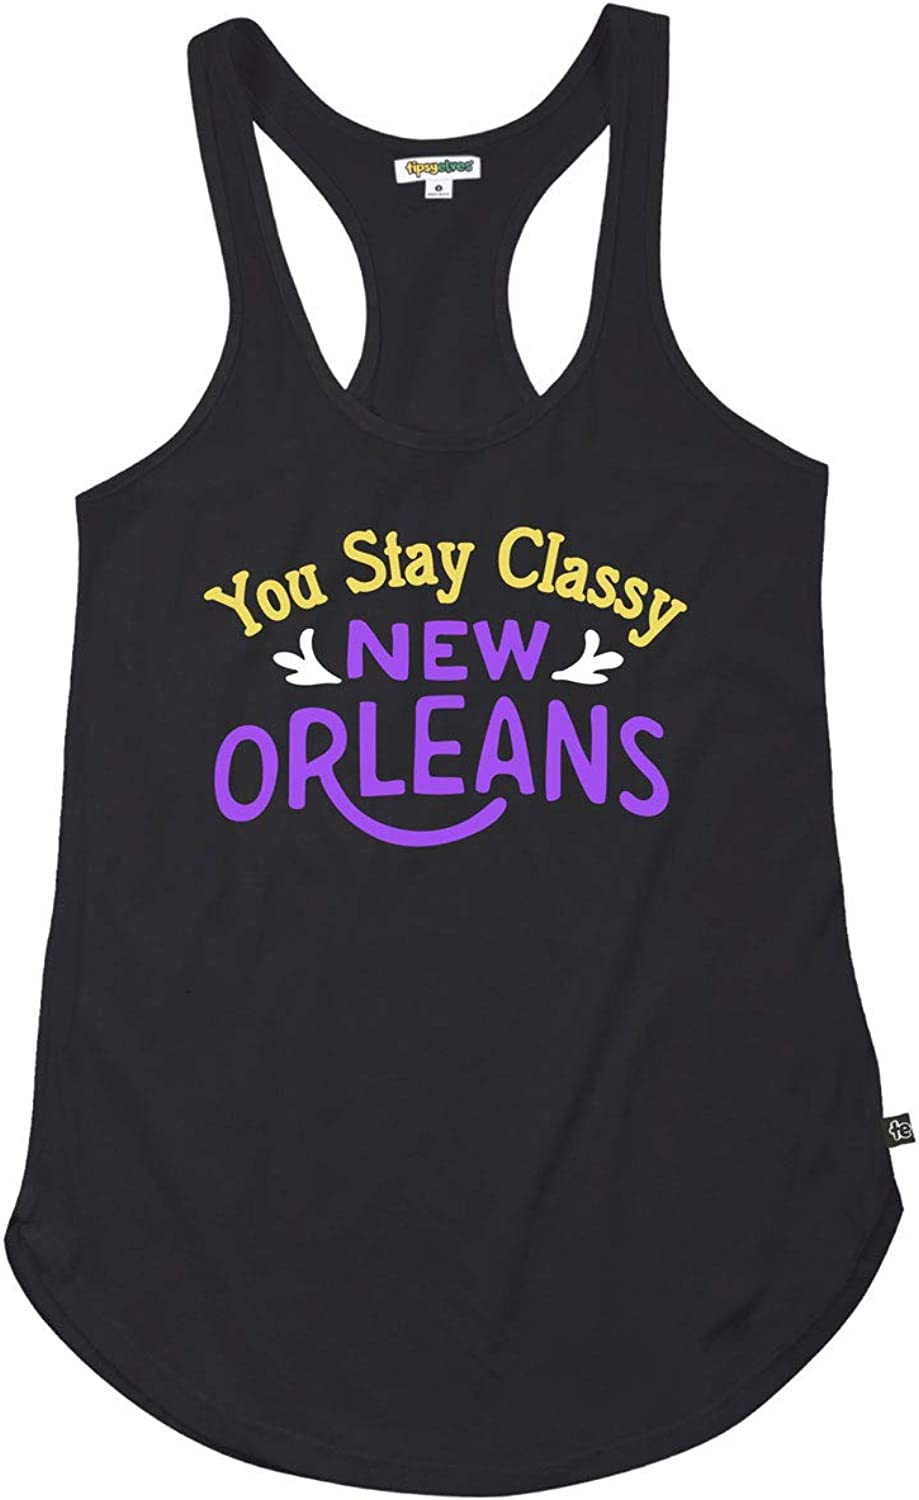 Tipsy Elves Women's Mardi Gras T Shirt Outfits - Female Funny Mardi Gras Costume Tank Tops